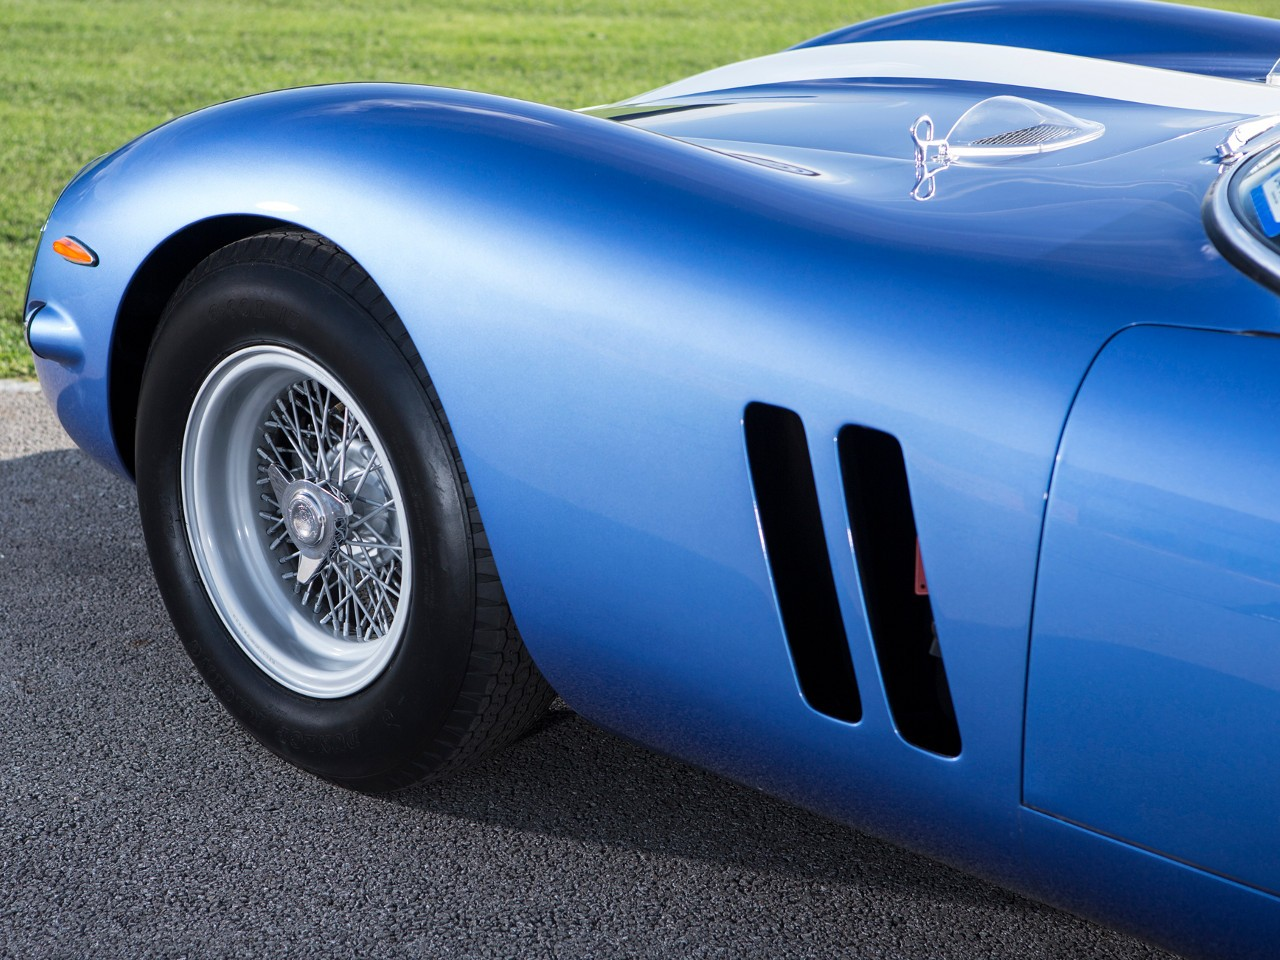 most expensive car in the world history Automotive history has just been made as the 1936 bugatti type 57sc atlantic world's most expensive car car is the most expensive car in the history.